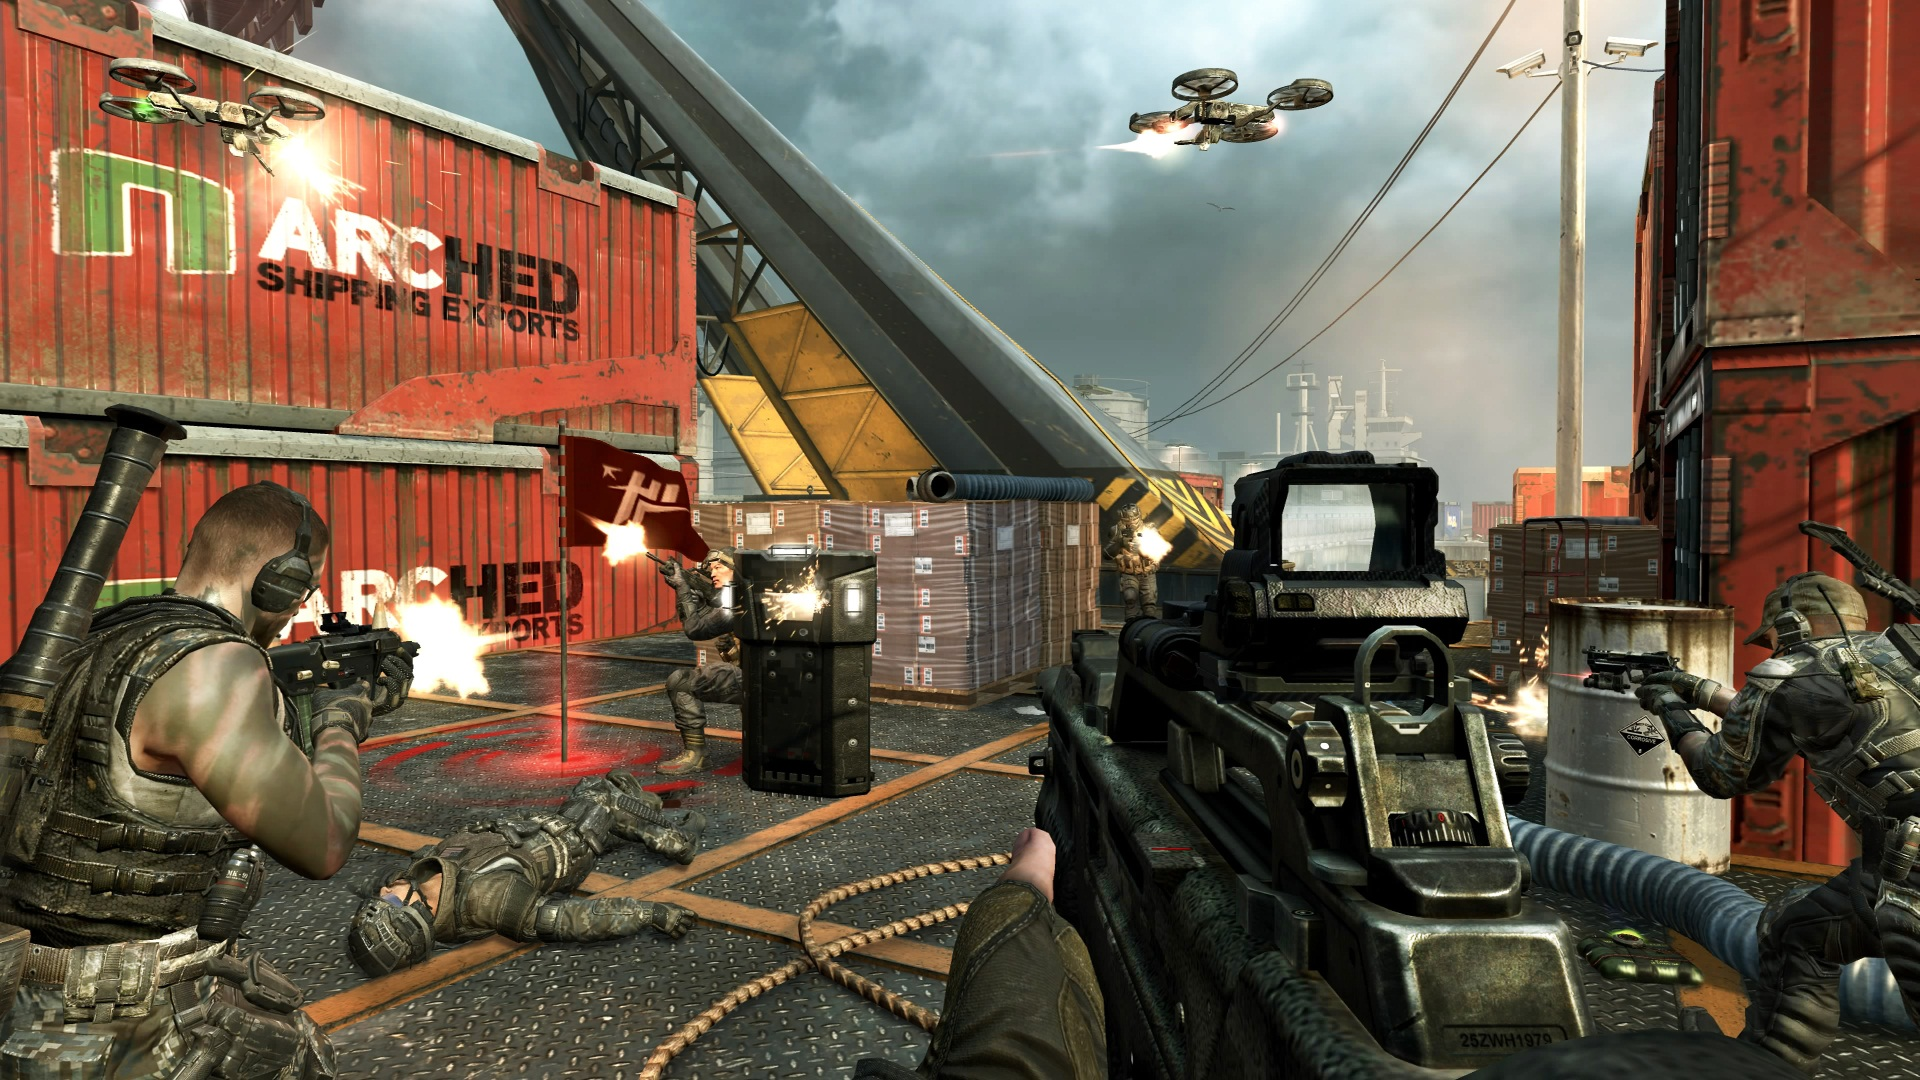 Call of Duty Multiplayer angespielt: Black Ops 2 auf dem iPad - Call Of Duty: Black Ops 2